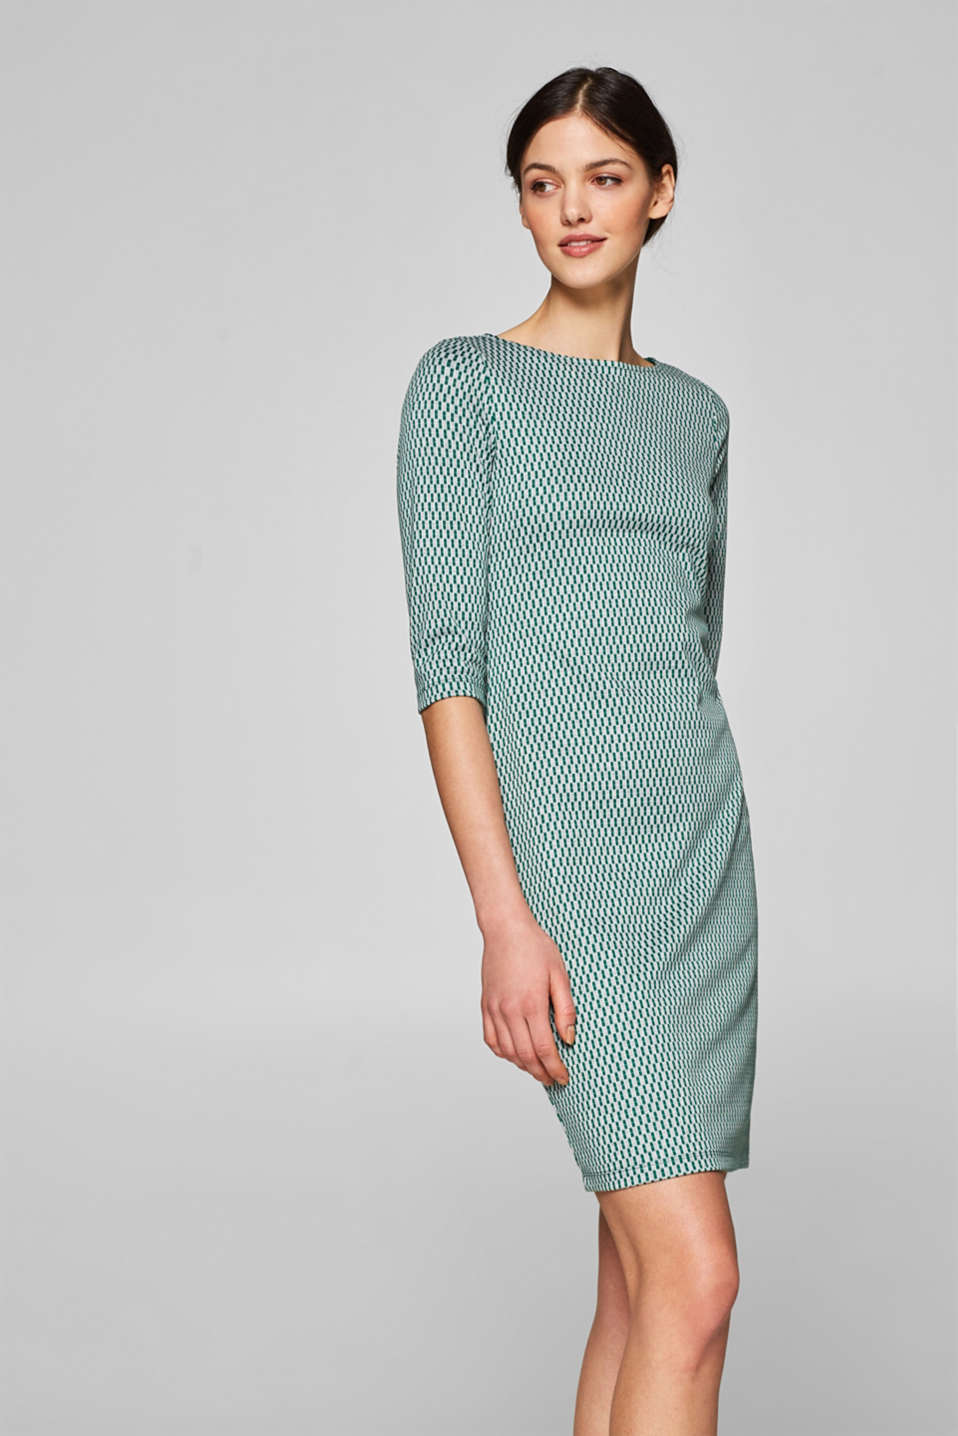 Esprit - Sheath dress in jacquard jersey